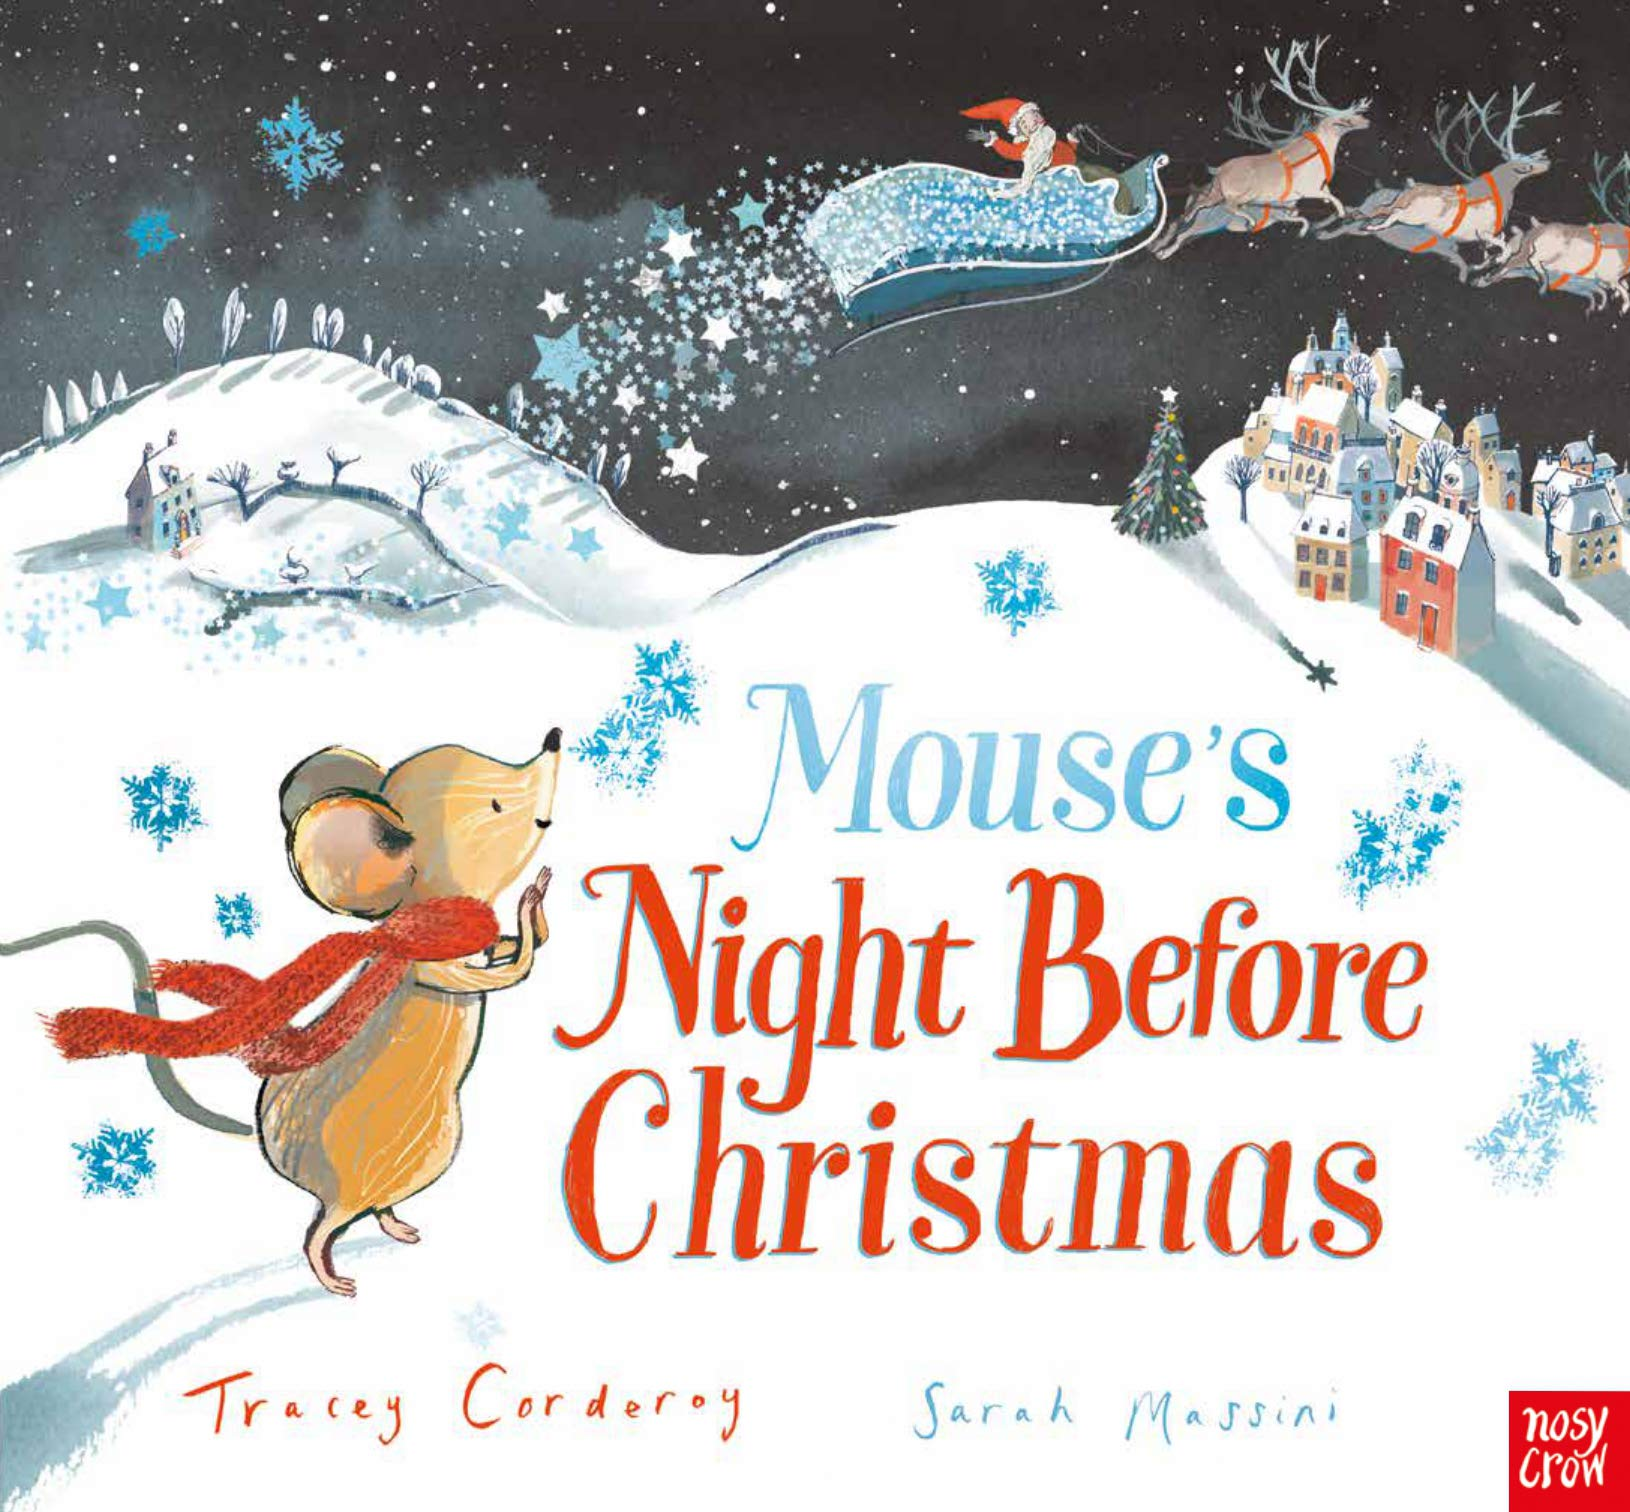 Meet the Christmas Mouse at Waterstones Oxford